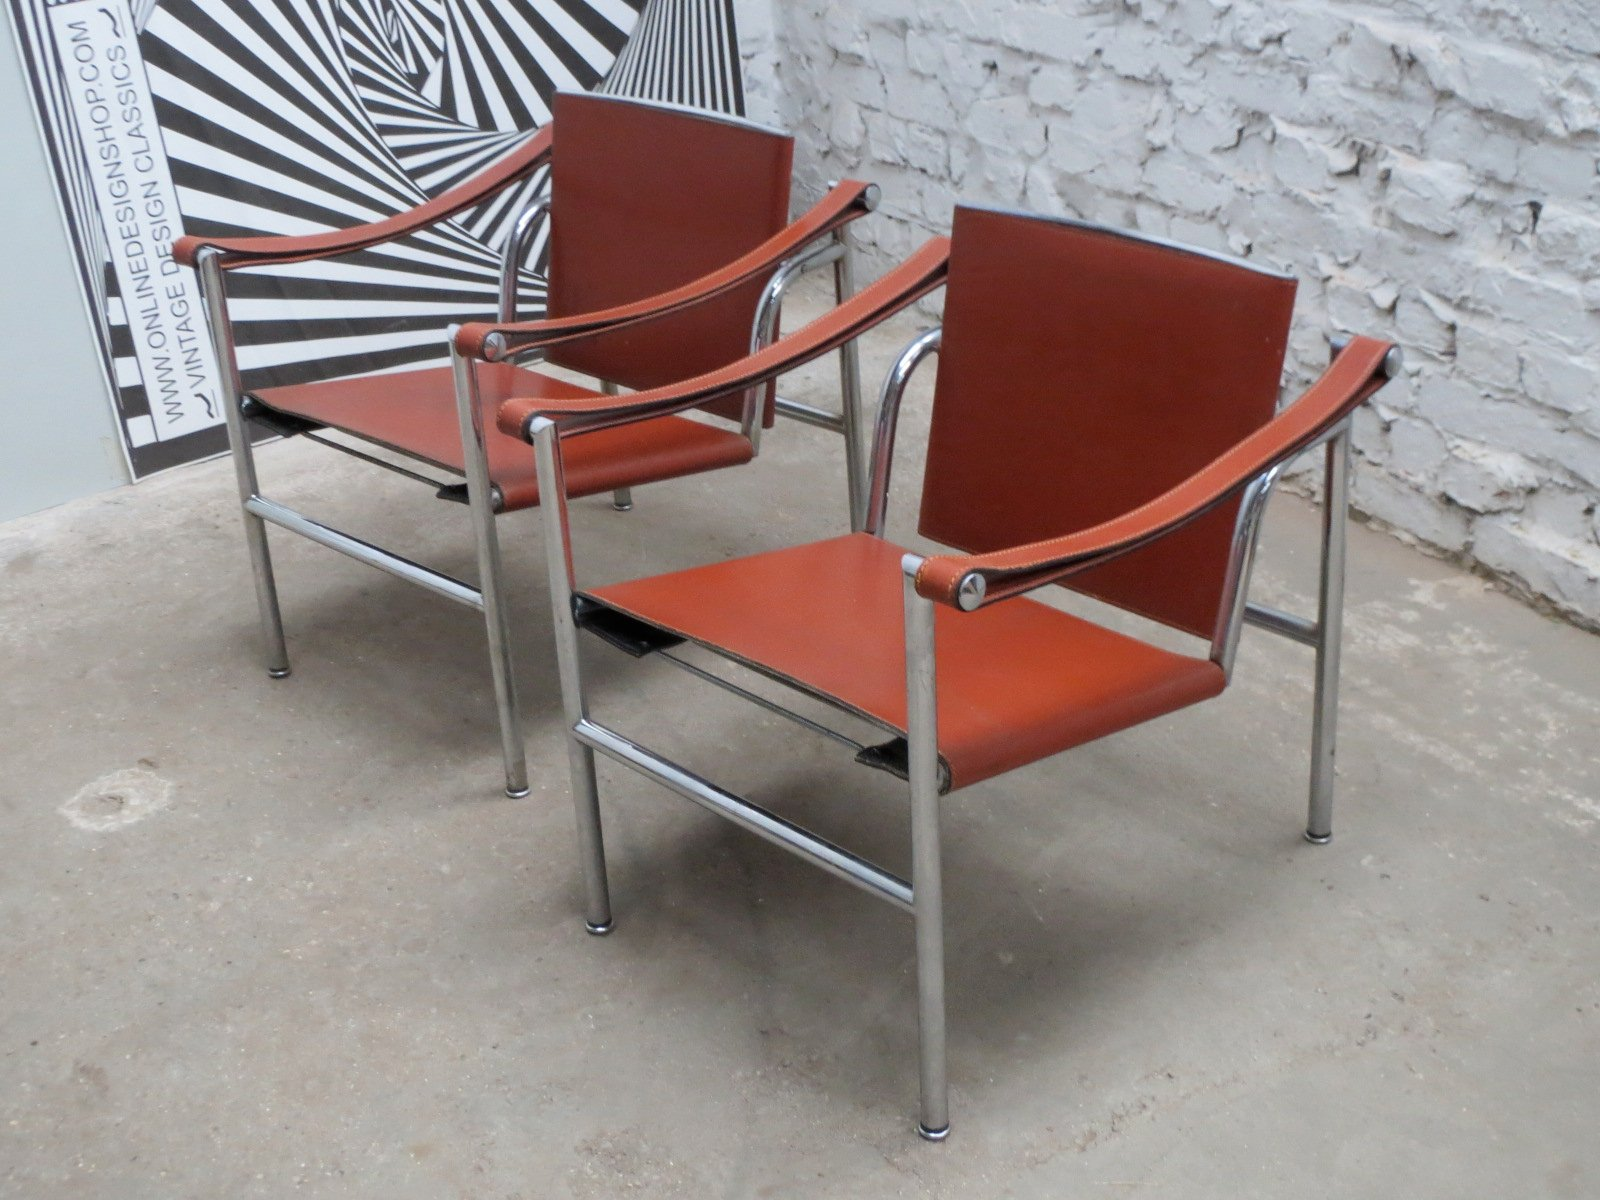 le corbusier chair rooms to go sleeper italian modernist basculant lc1 by